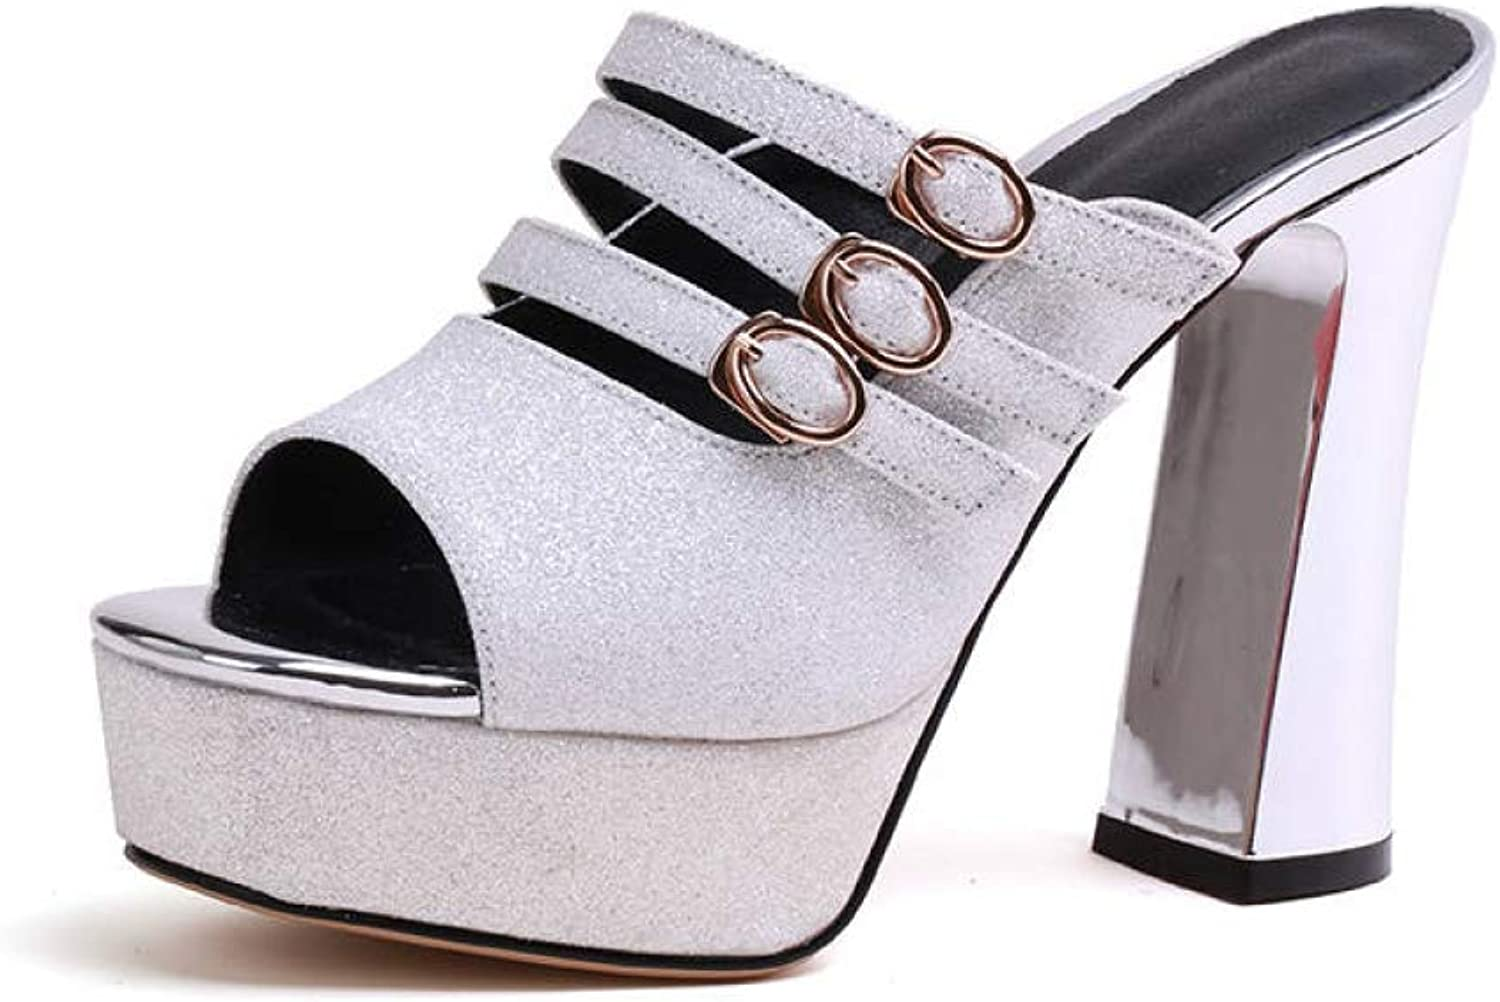 T-JULY Summer Mules Pumps shoes for Women Chunky High Heels Peep-Toe Sexy Buckle Straps Party Woman shoes